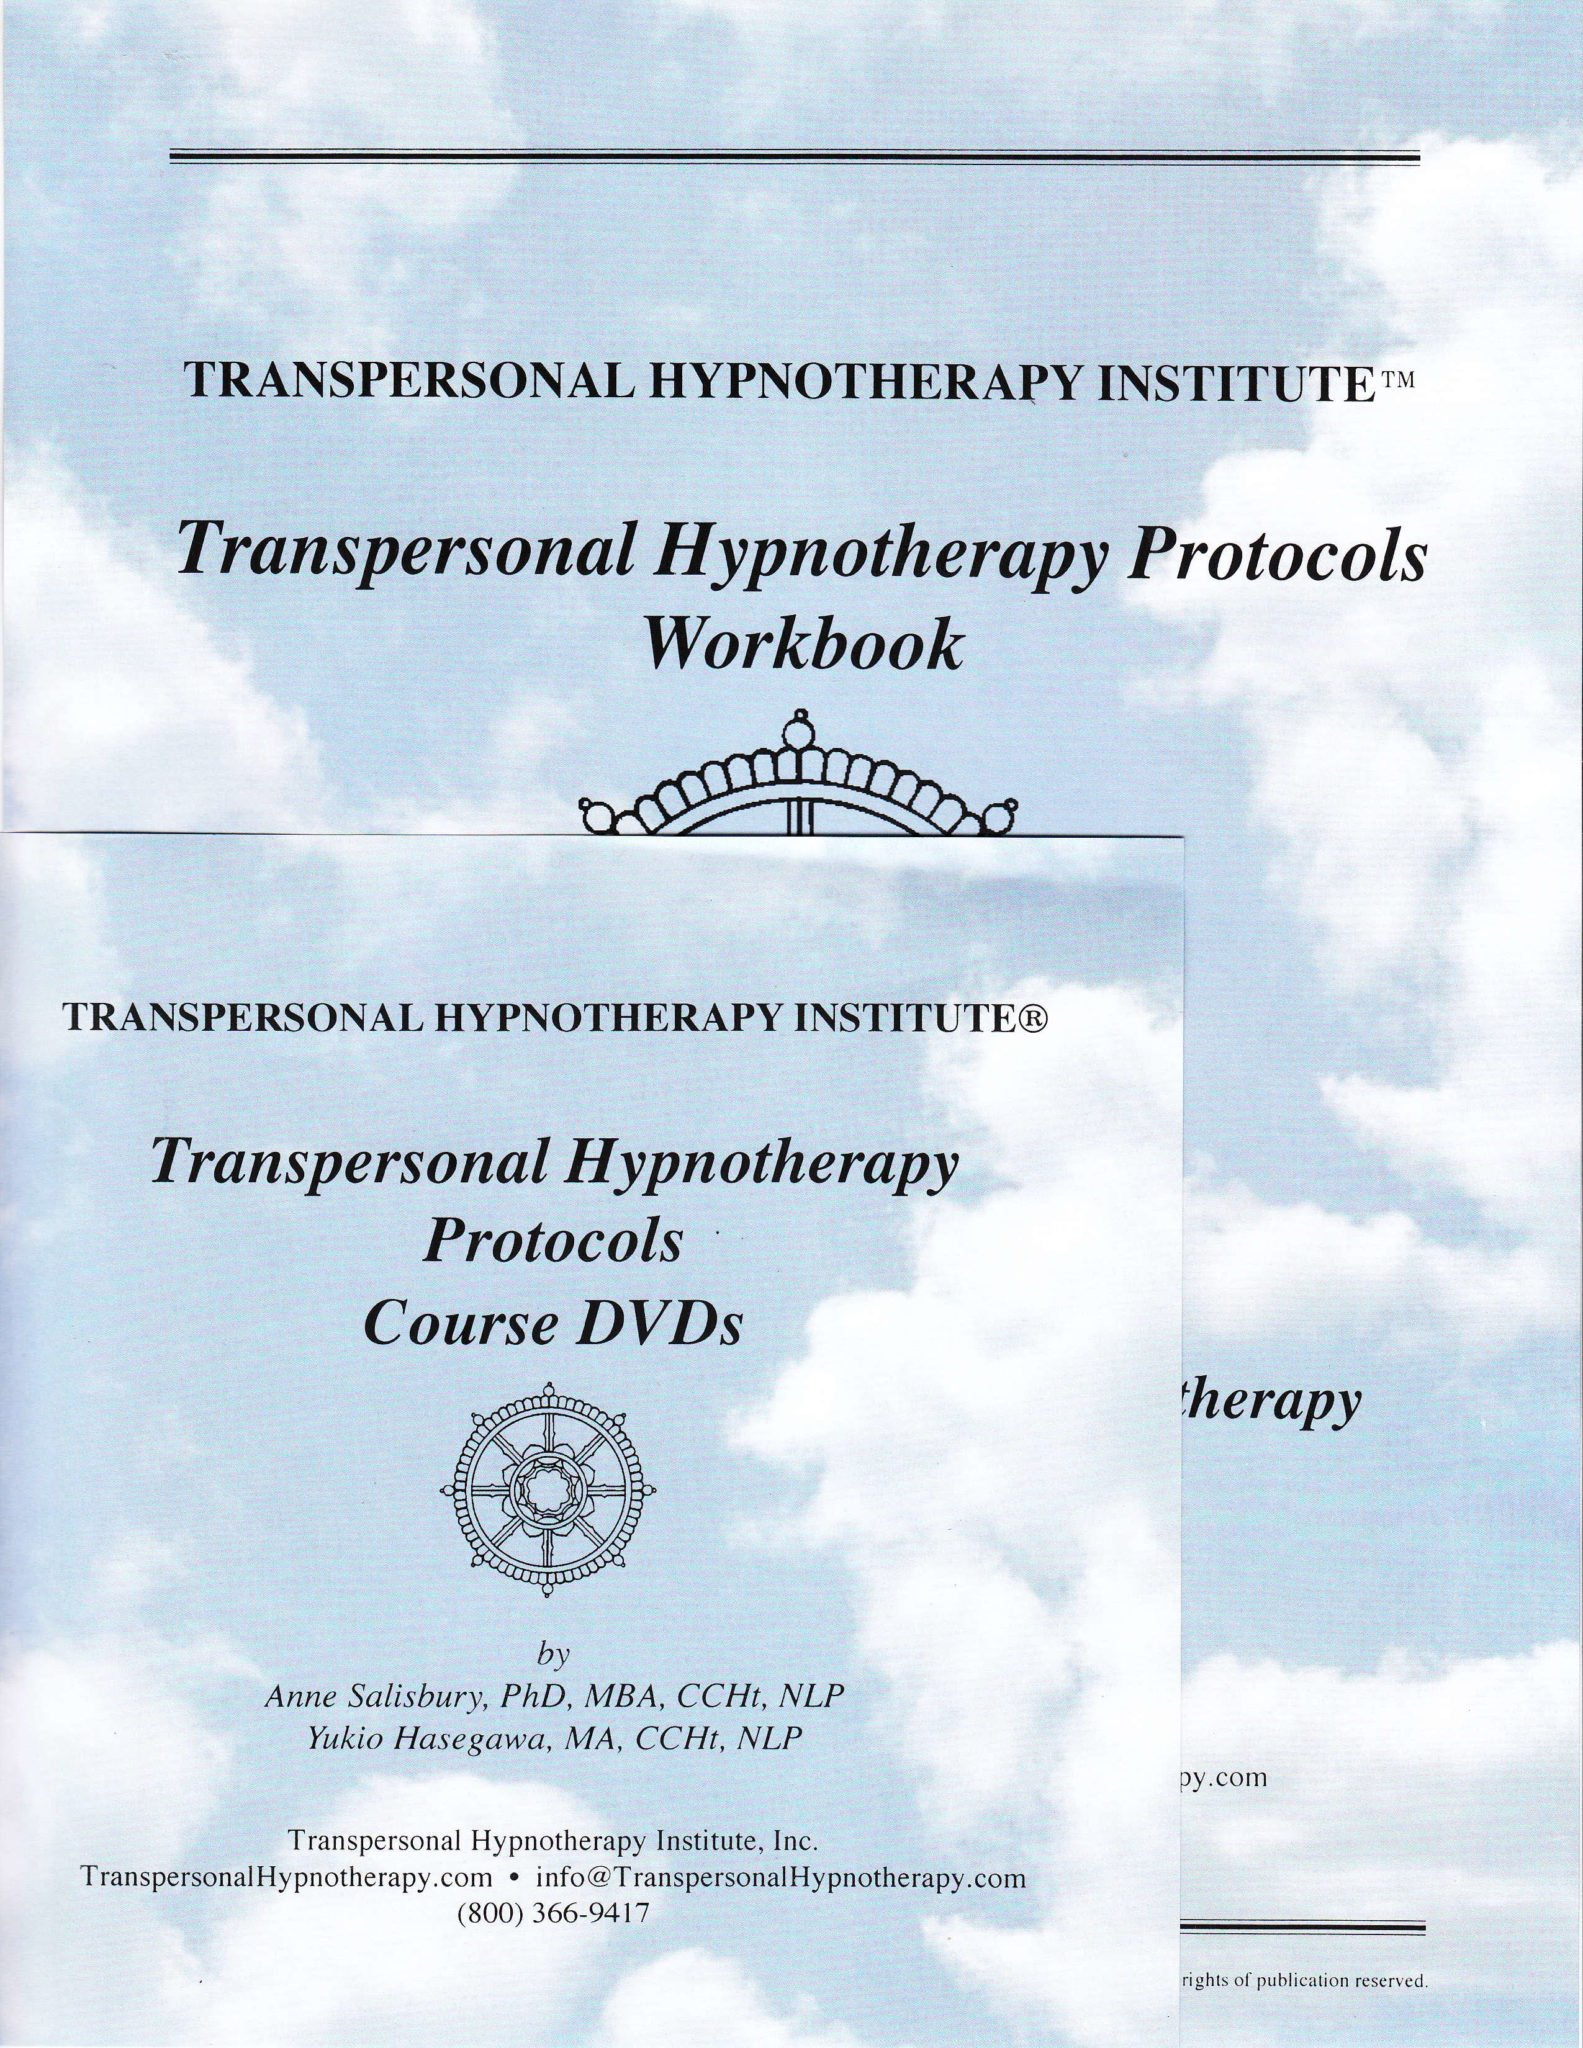 Transpersonal Hypnotherapy Protocols Course